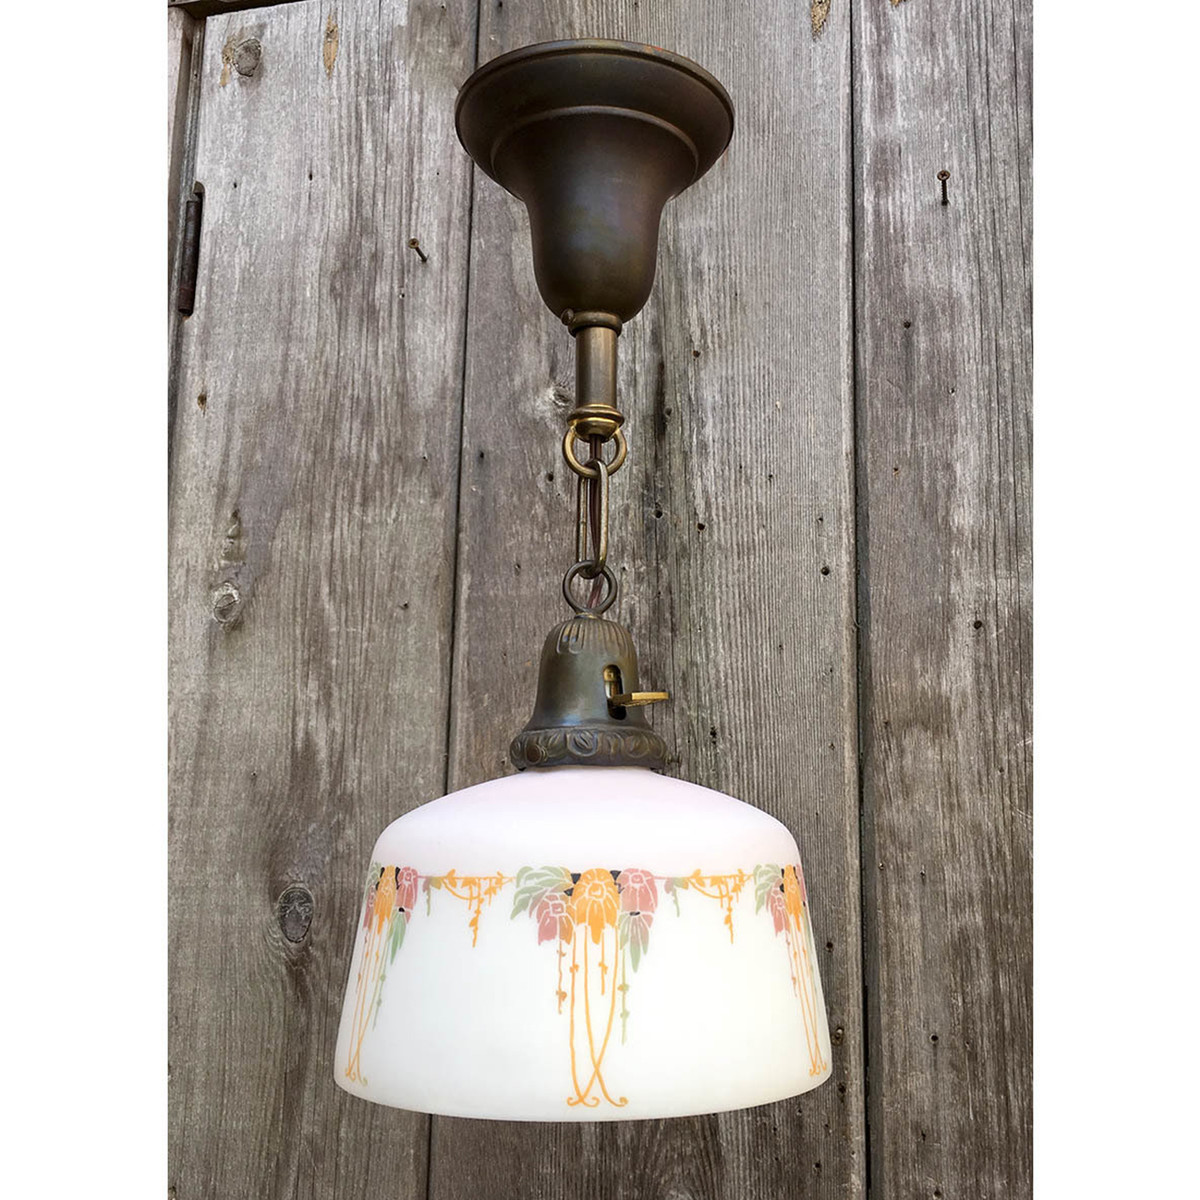 L11076 - Antique Brass Fixture With An Art Nouveau Style Shade